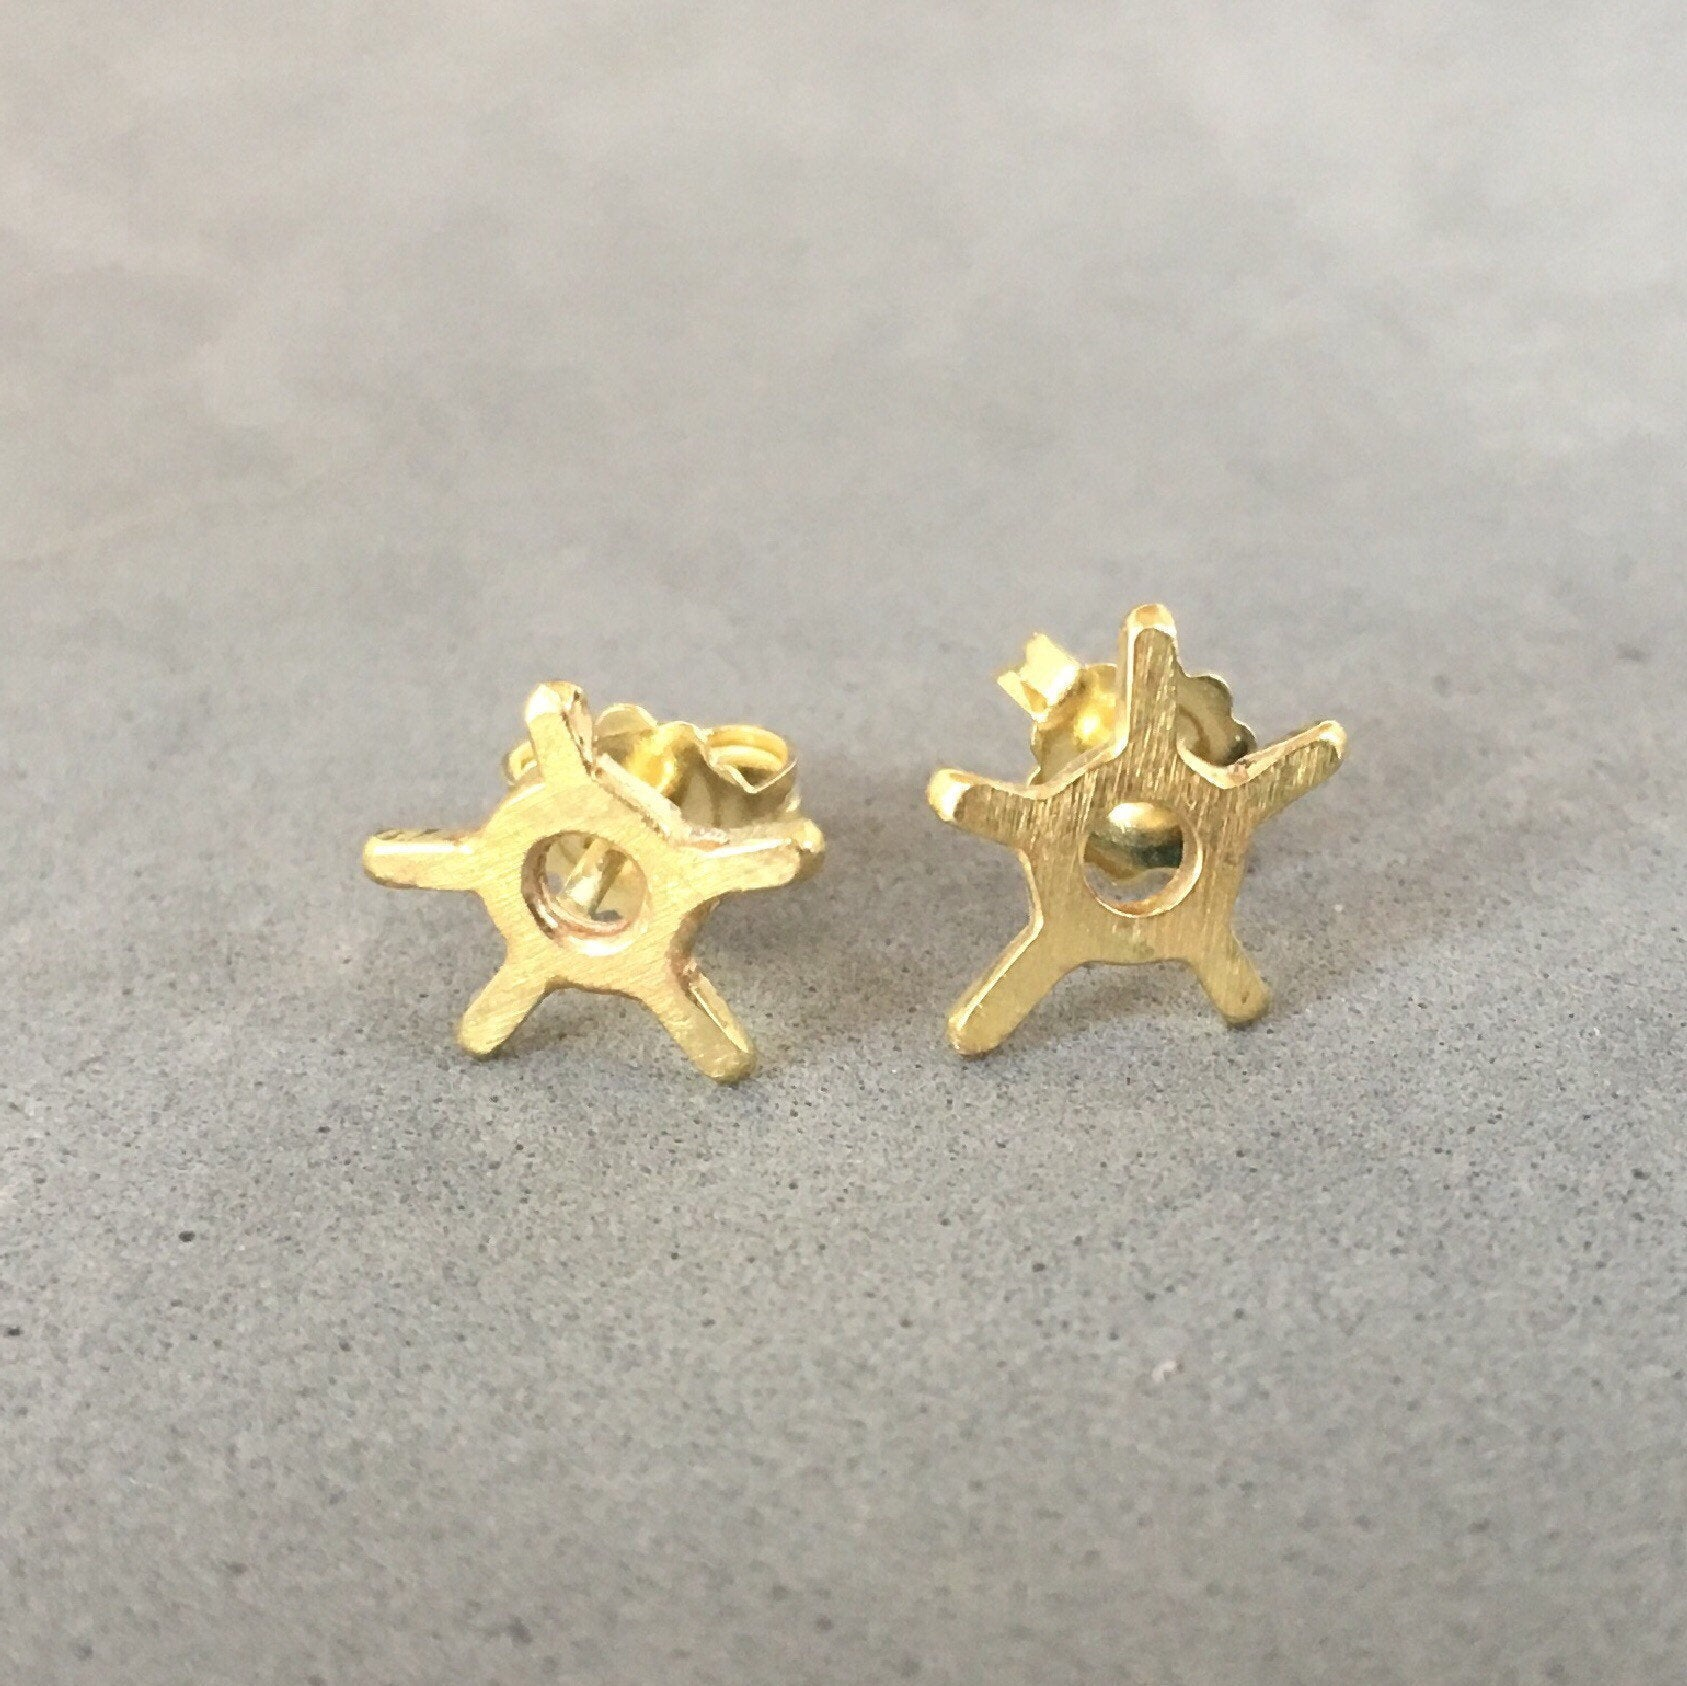 18K Gold Atomic Stud Earrings